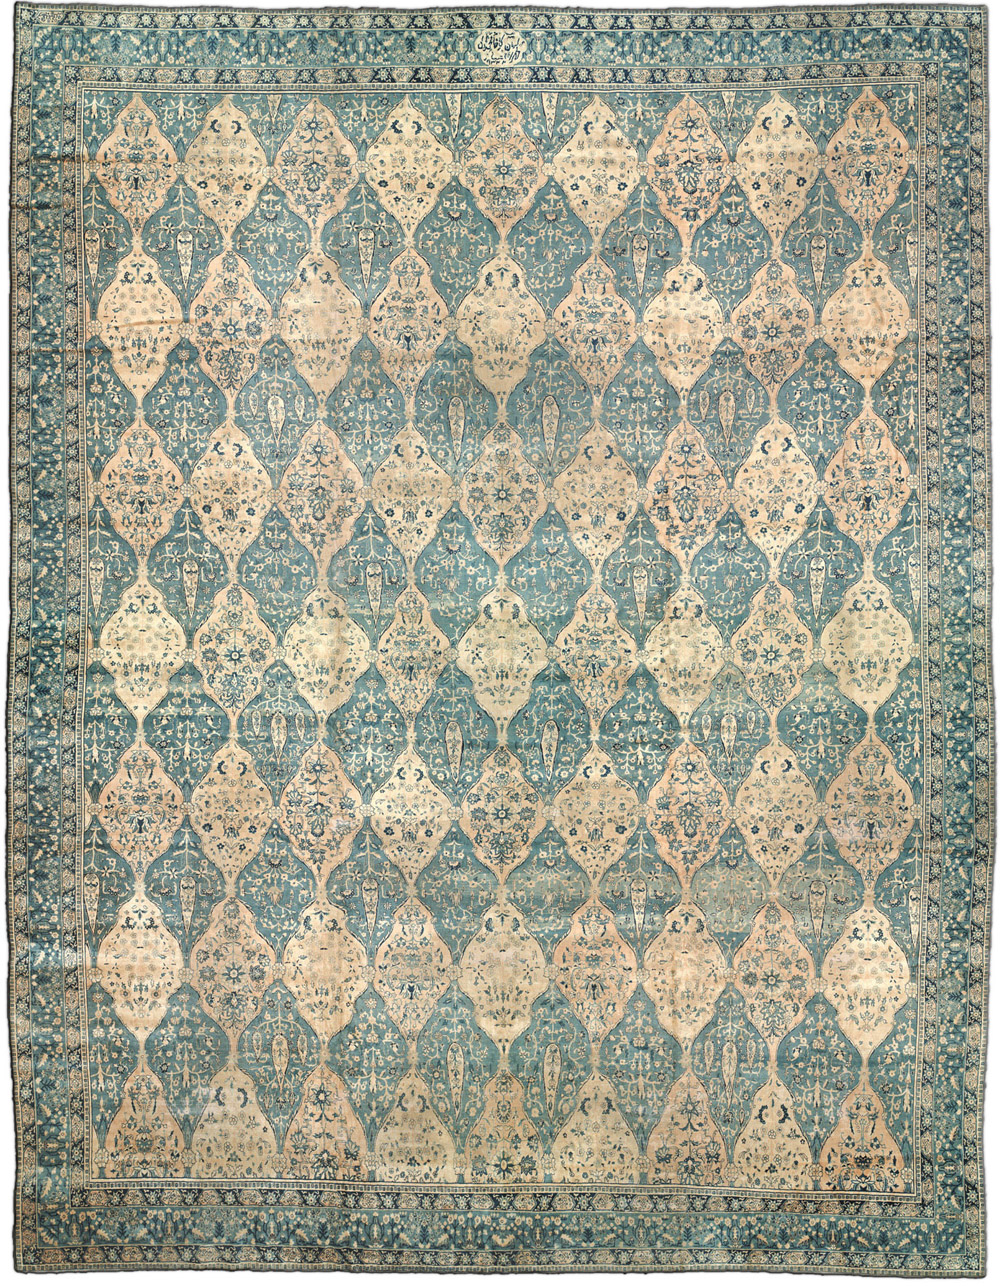 Doris Leslie Blau, Antique North Indian Carpet BB2023